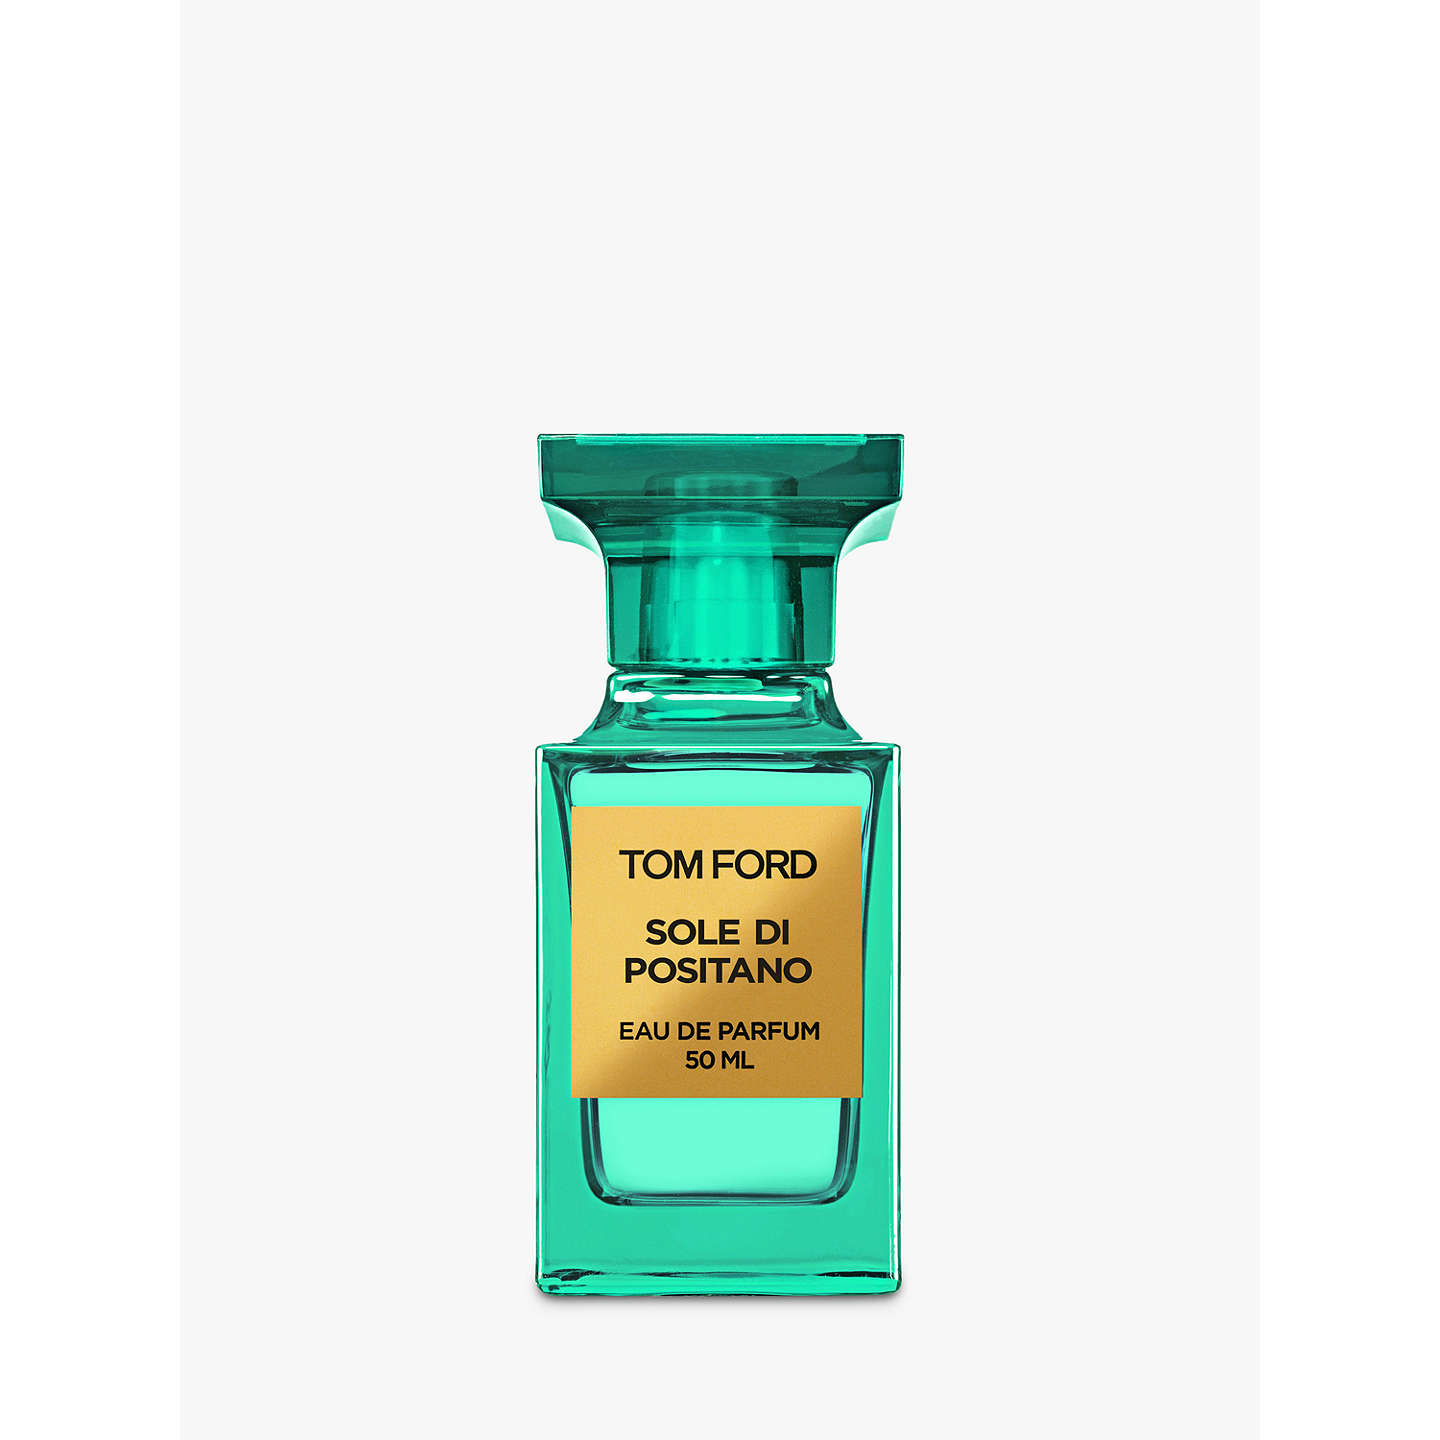 BuyTOM FORD Private Blend Sole Di Positano Eau de Parfum, 50ml Online at johnlewis.com